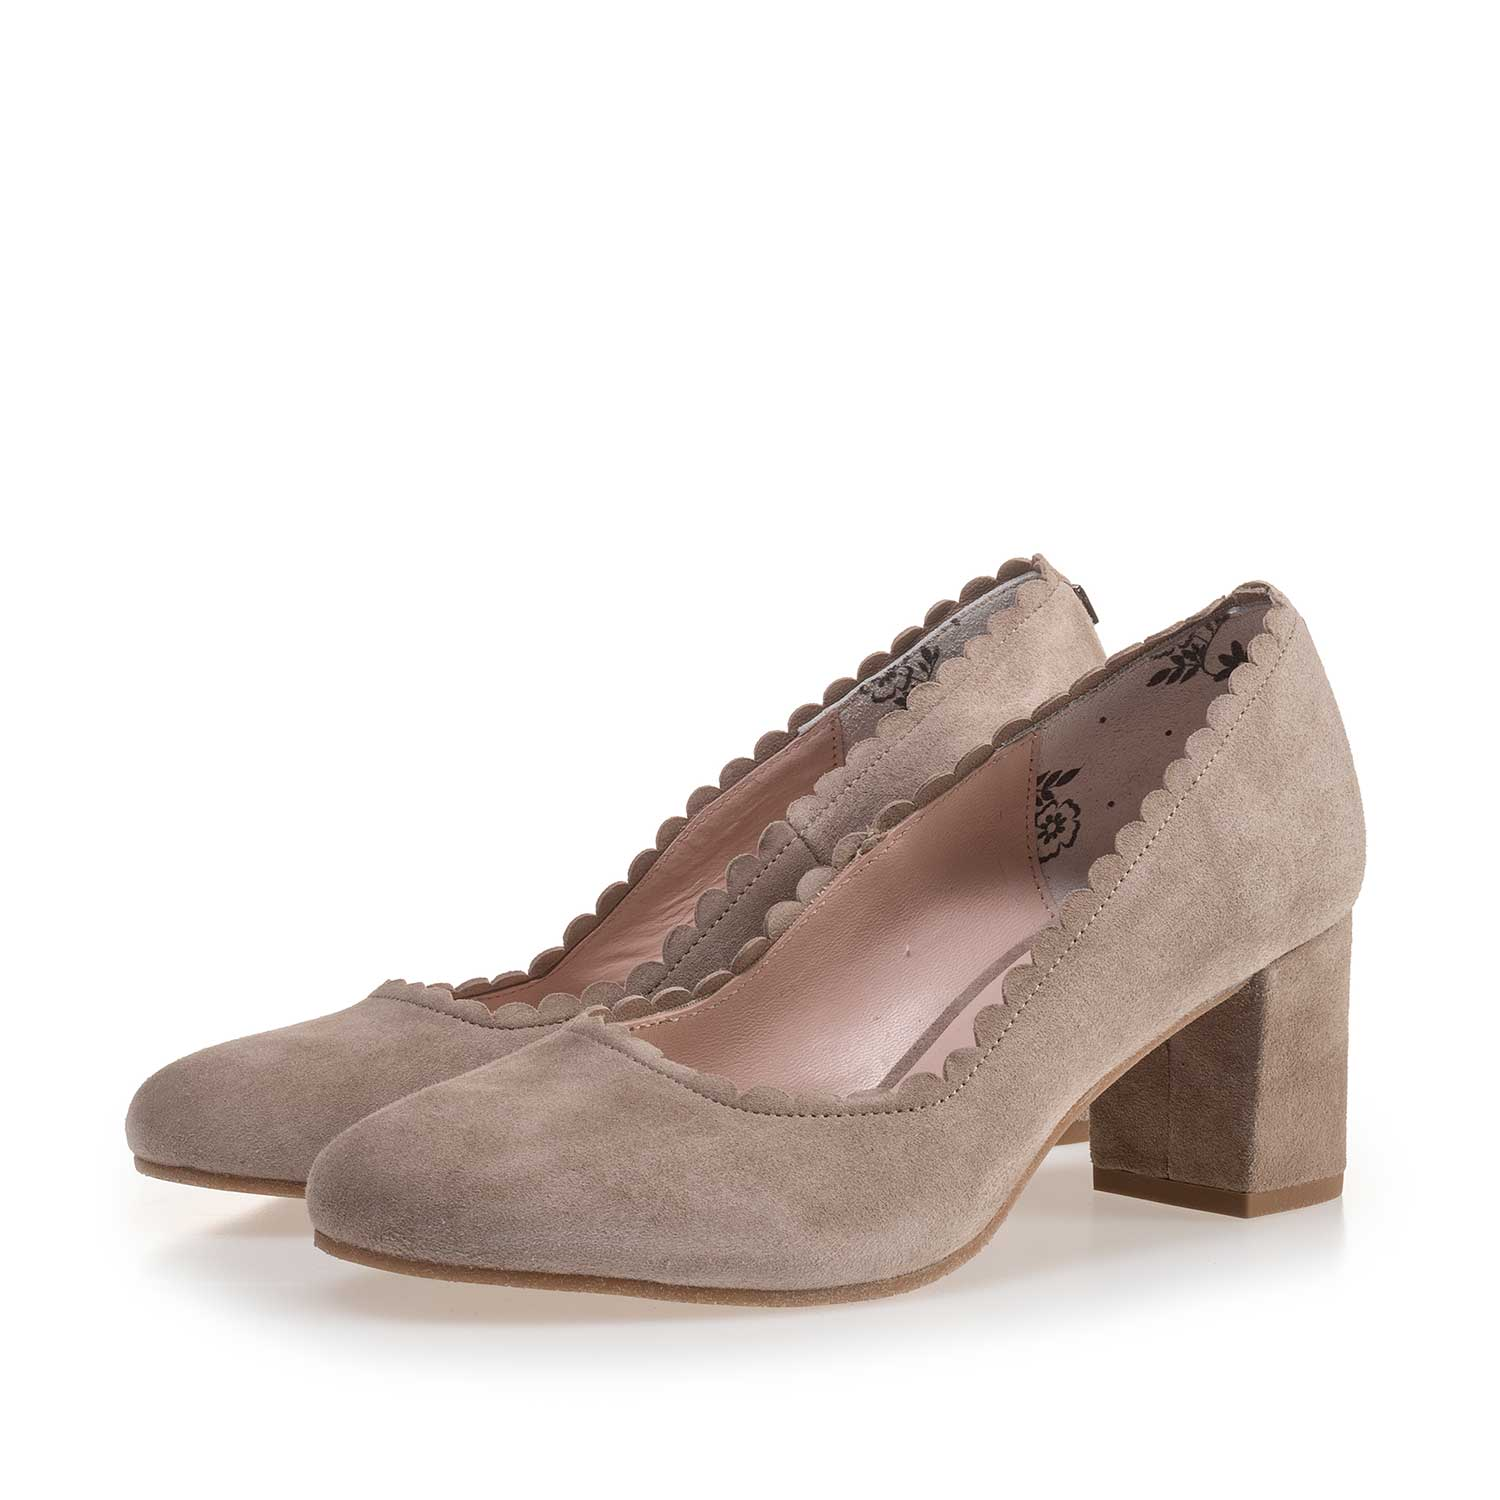 85226/01 - Taupe-coloured suede leather pumps